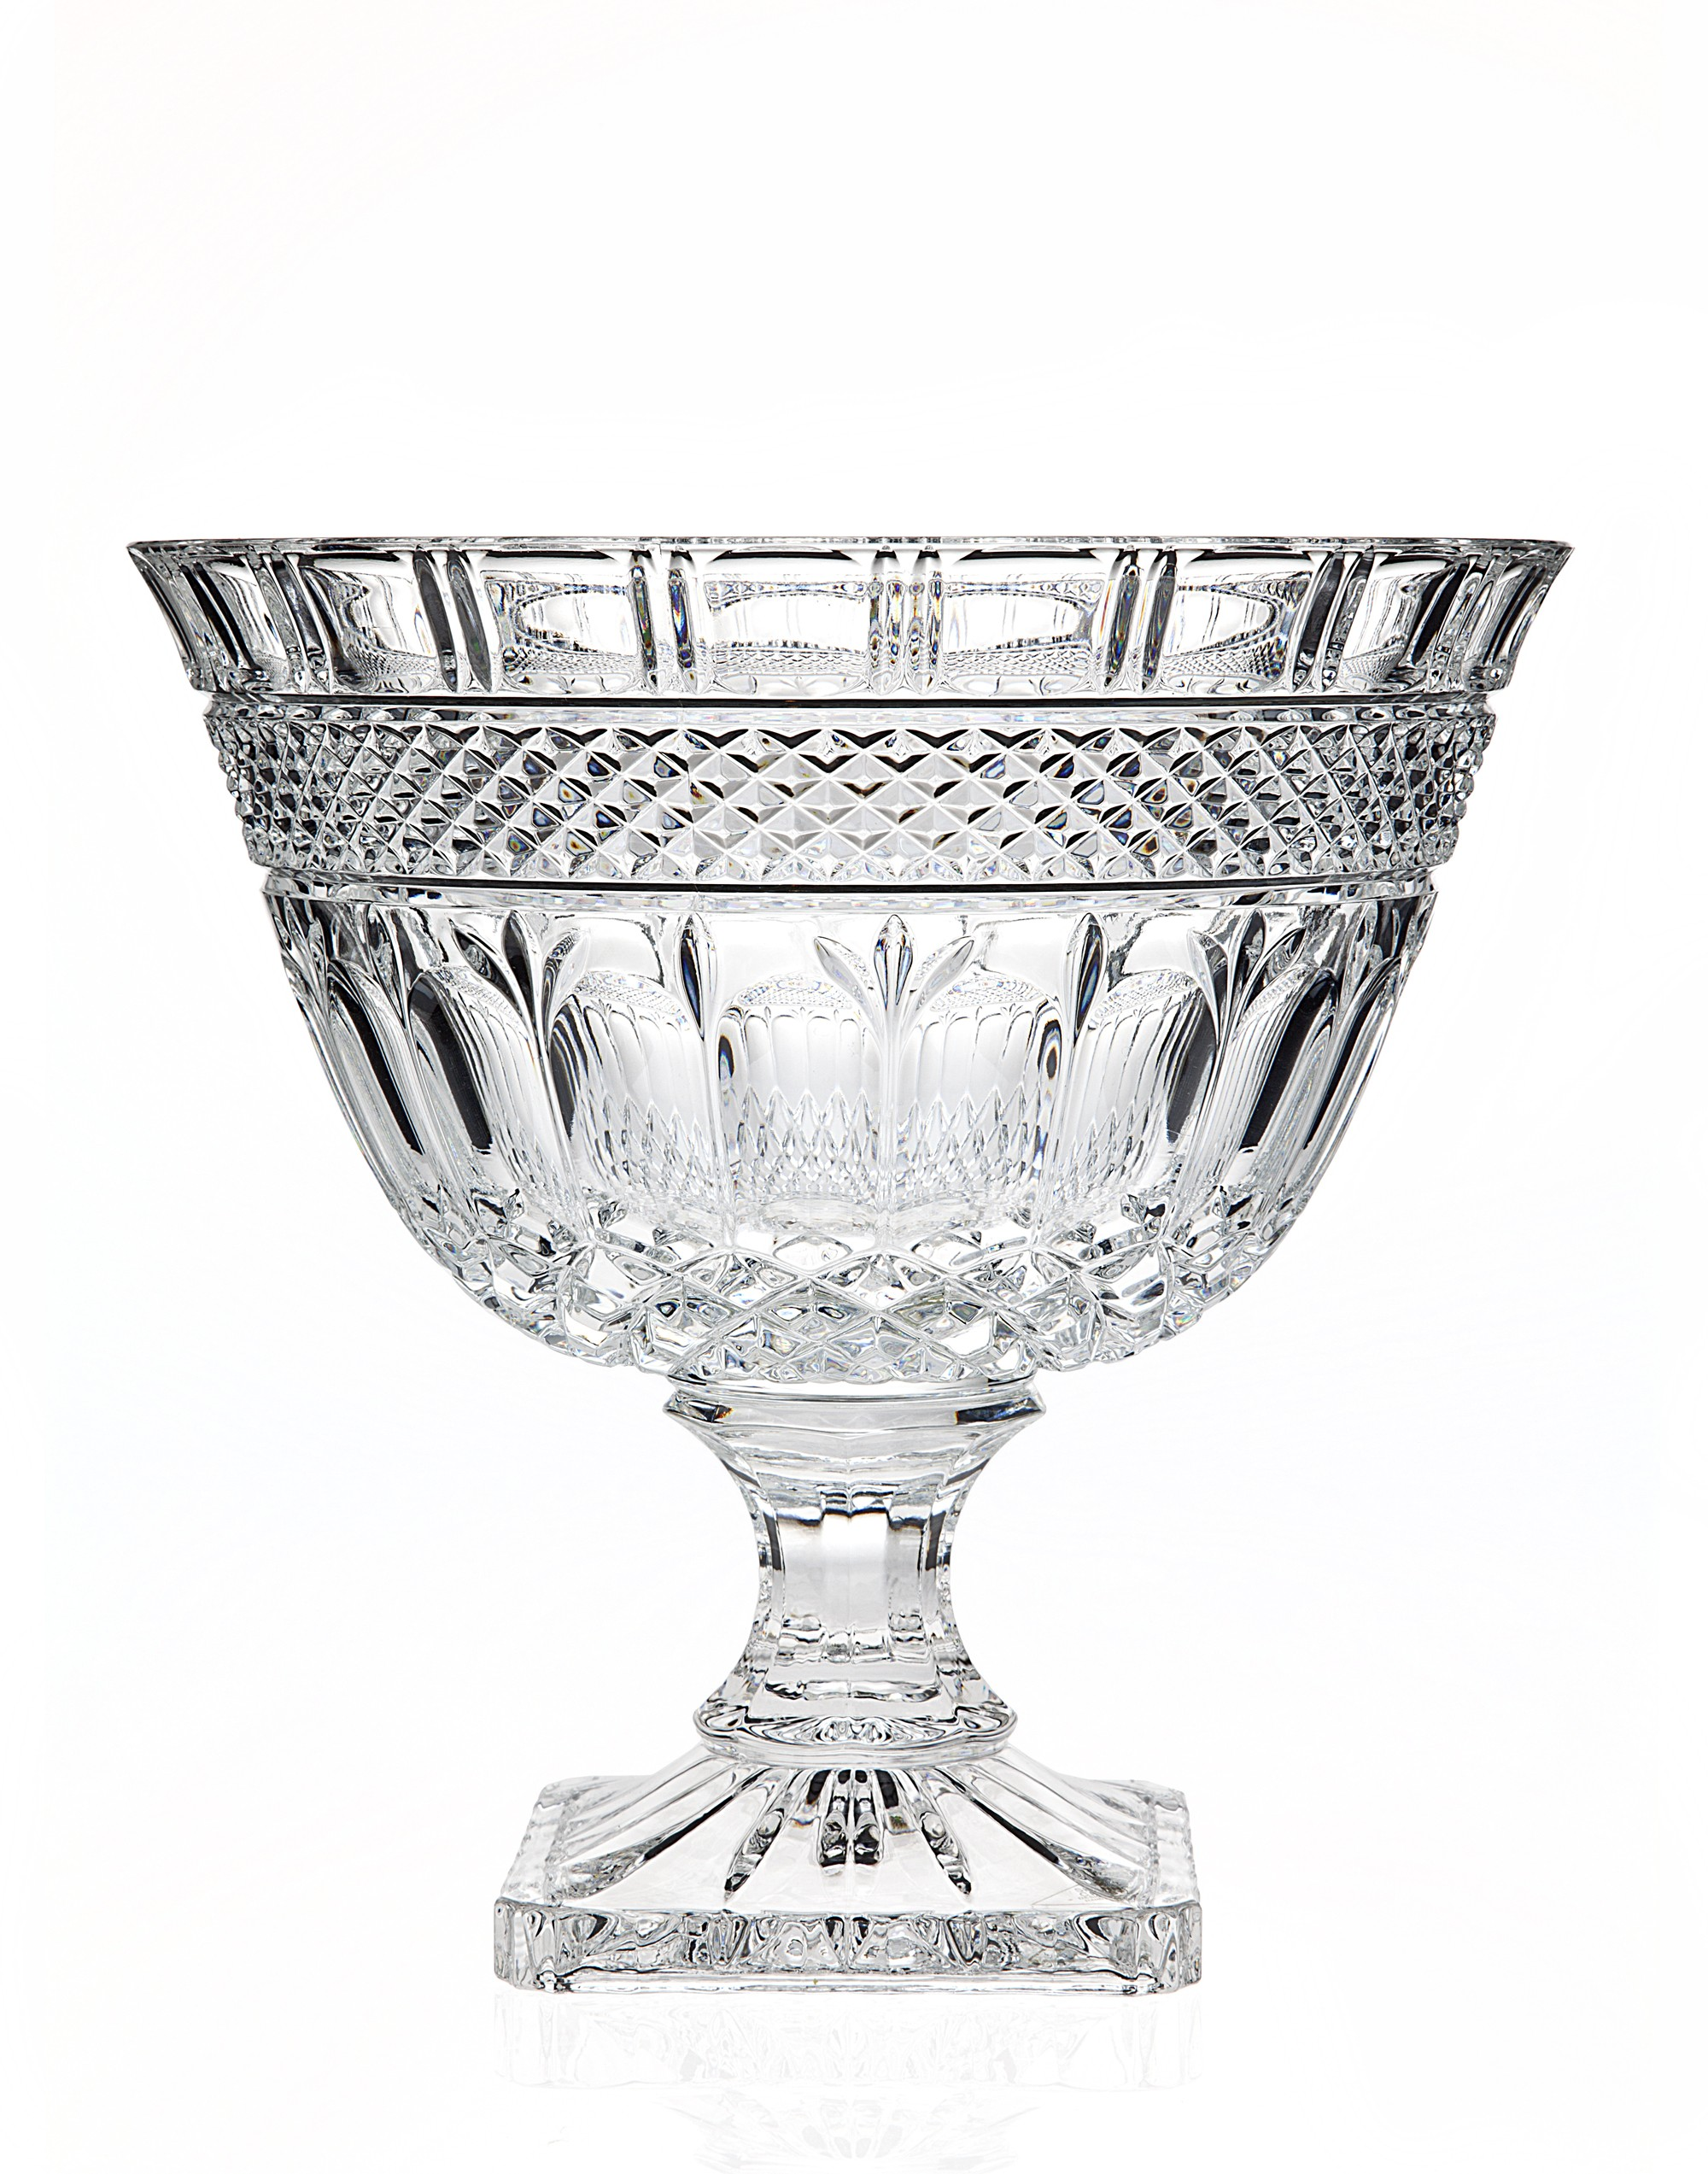 Cool shannon crystal by godinger for interior home accessories ideas with shannon crystal by godinger dublin